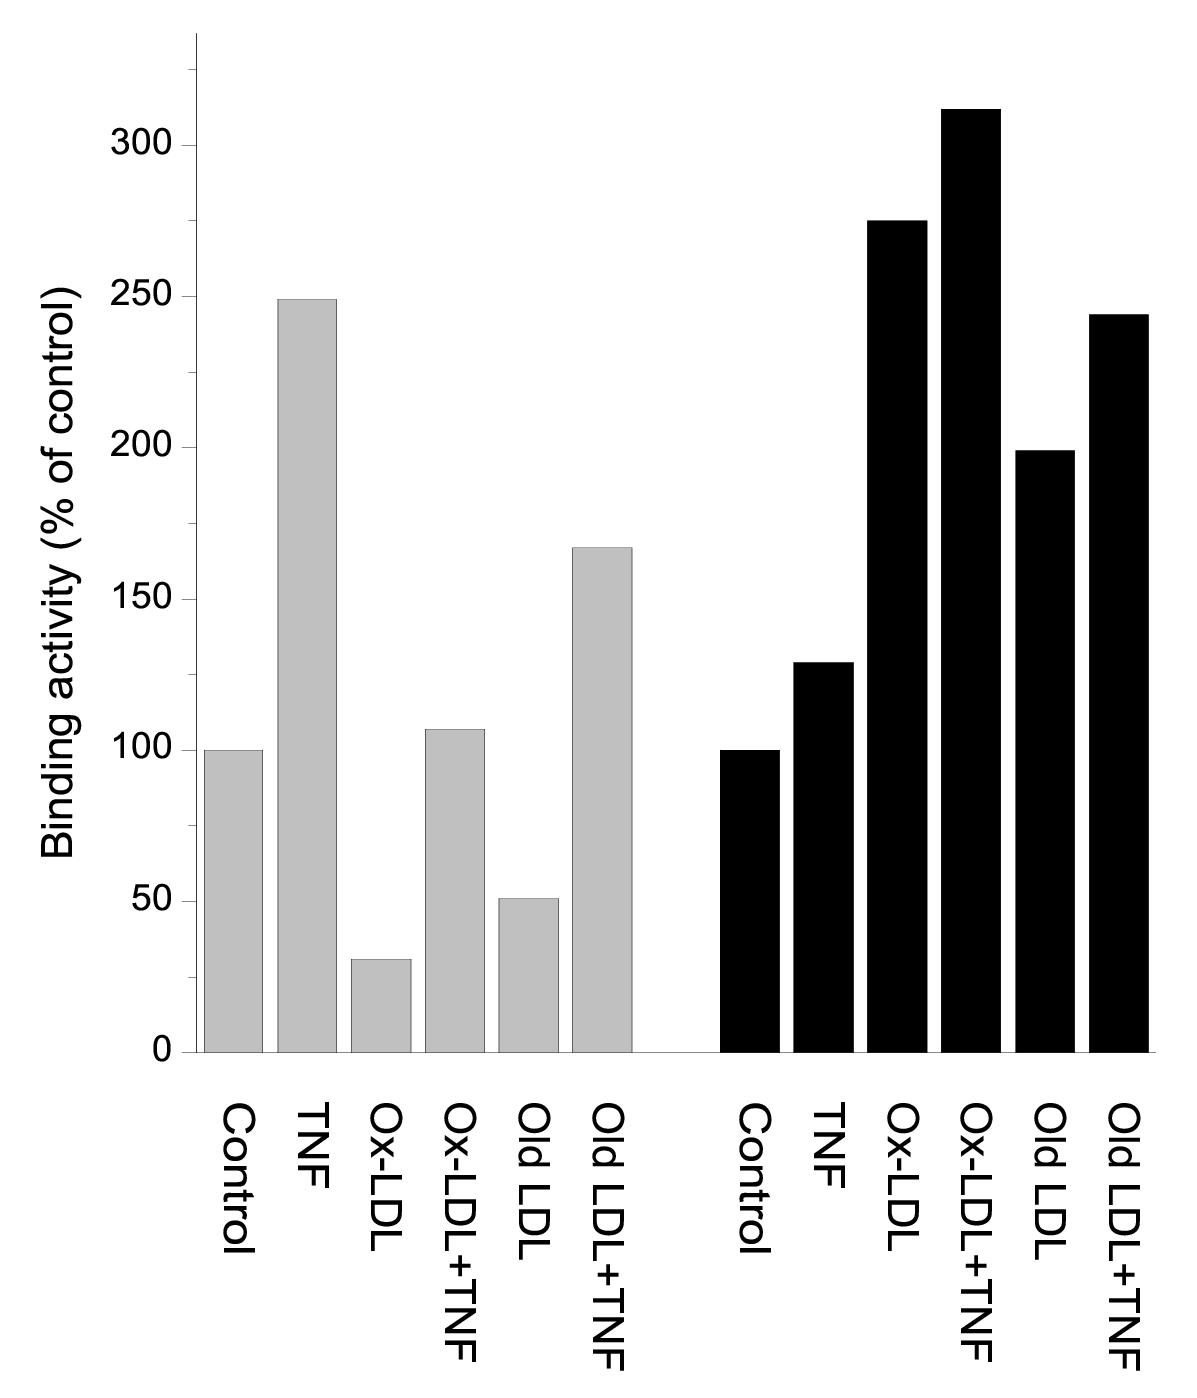 https://static-content.springer.com/image/art%3A10.1186%2F1471-2172-3-13/MediaObjects/12865_2002_Article_25_Fig4_HTML.jpg